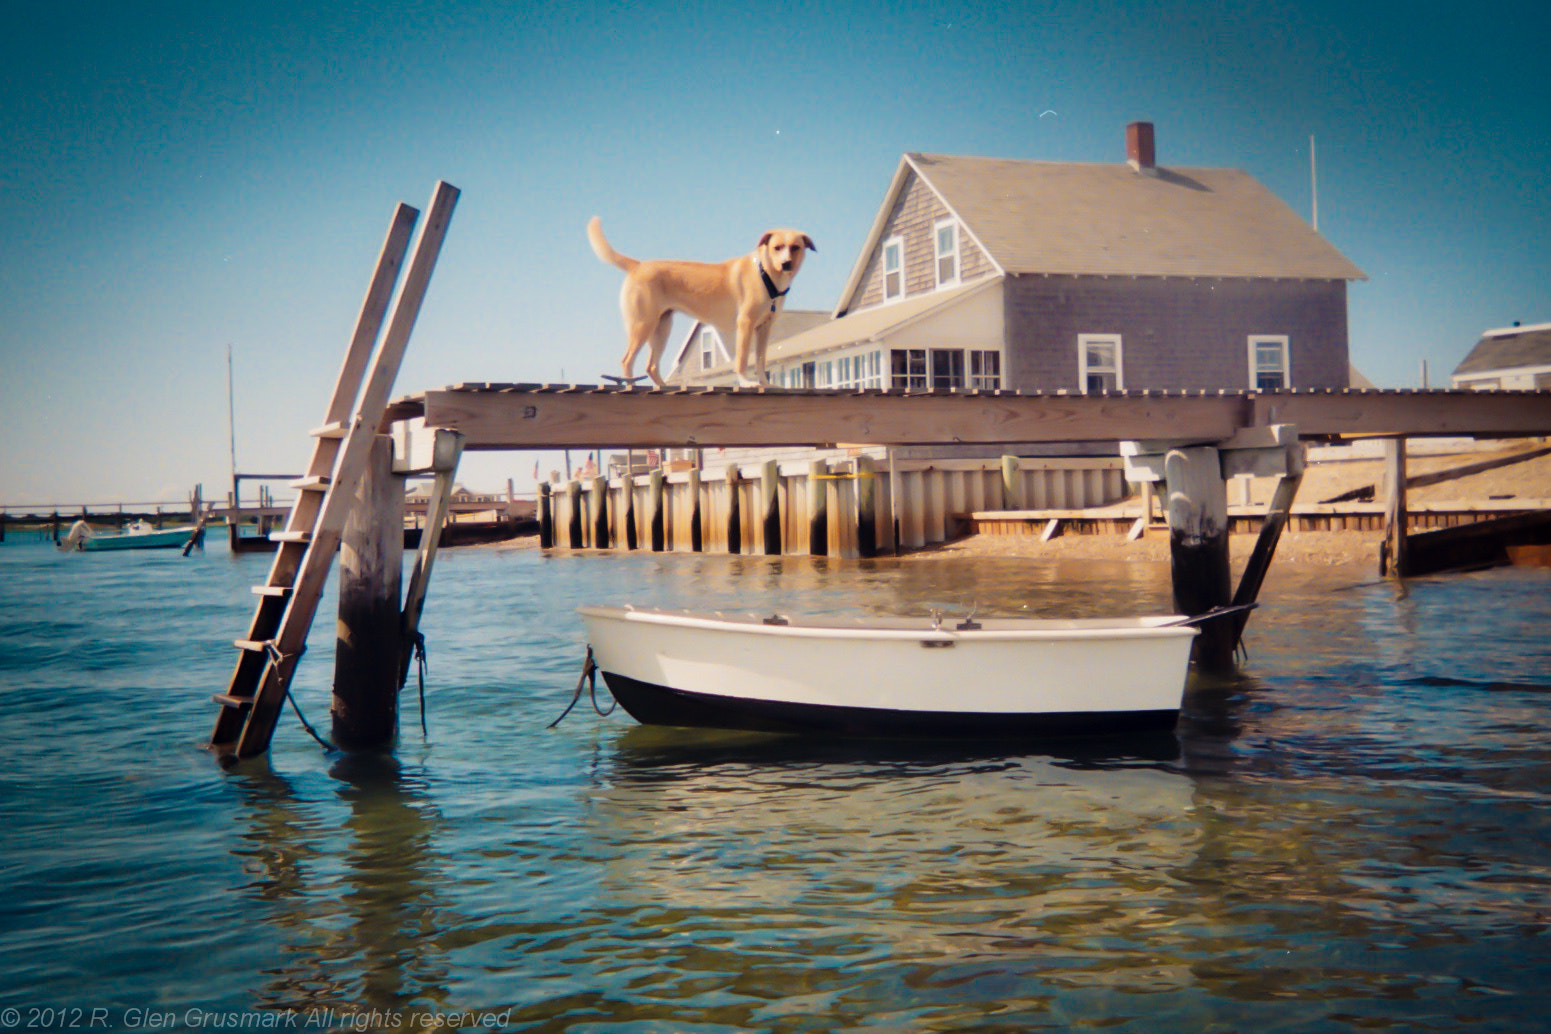 Photograph Tippy on the Dock by R. Glen Grusmark on 500px